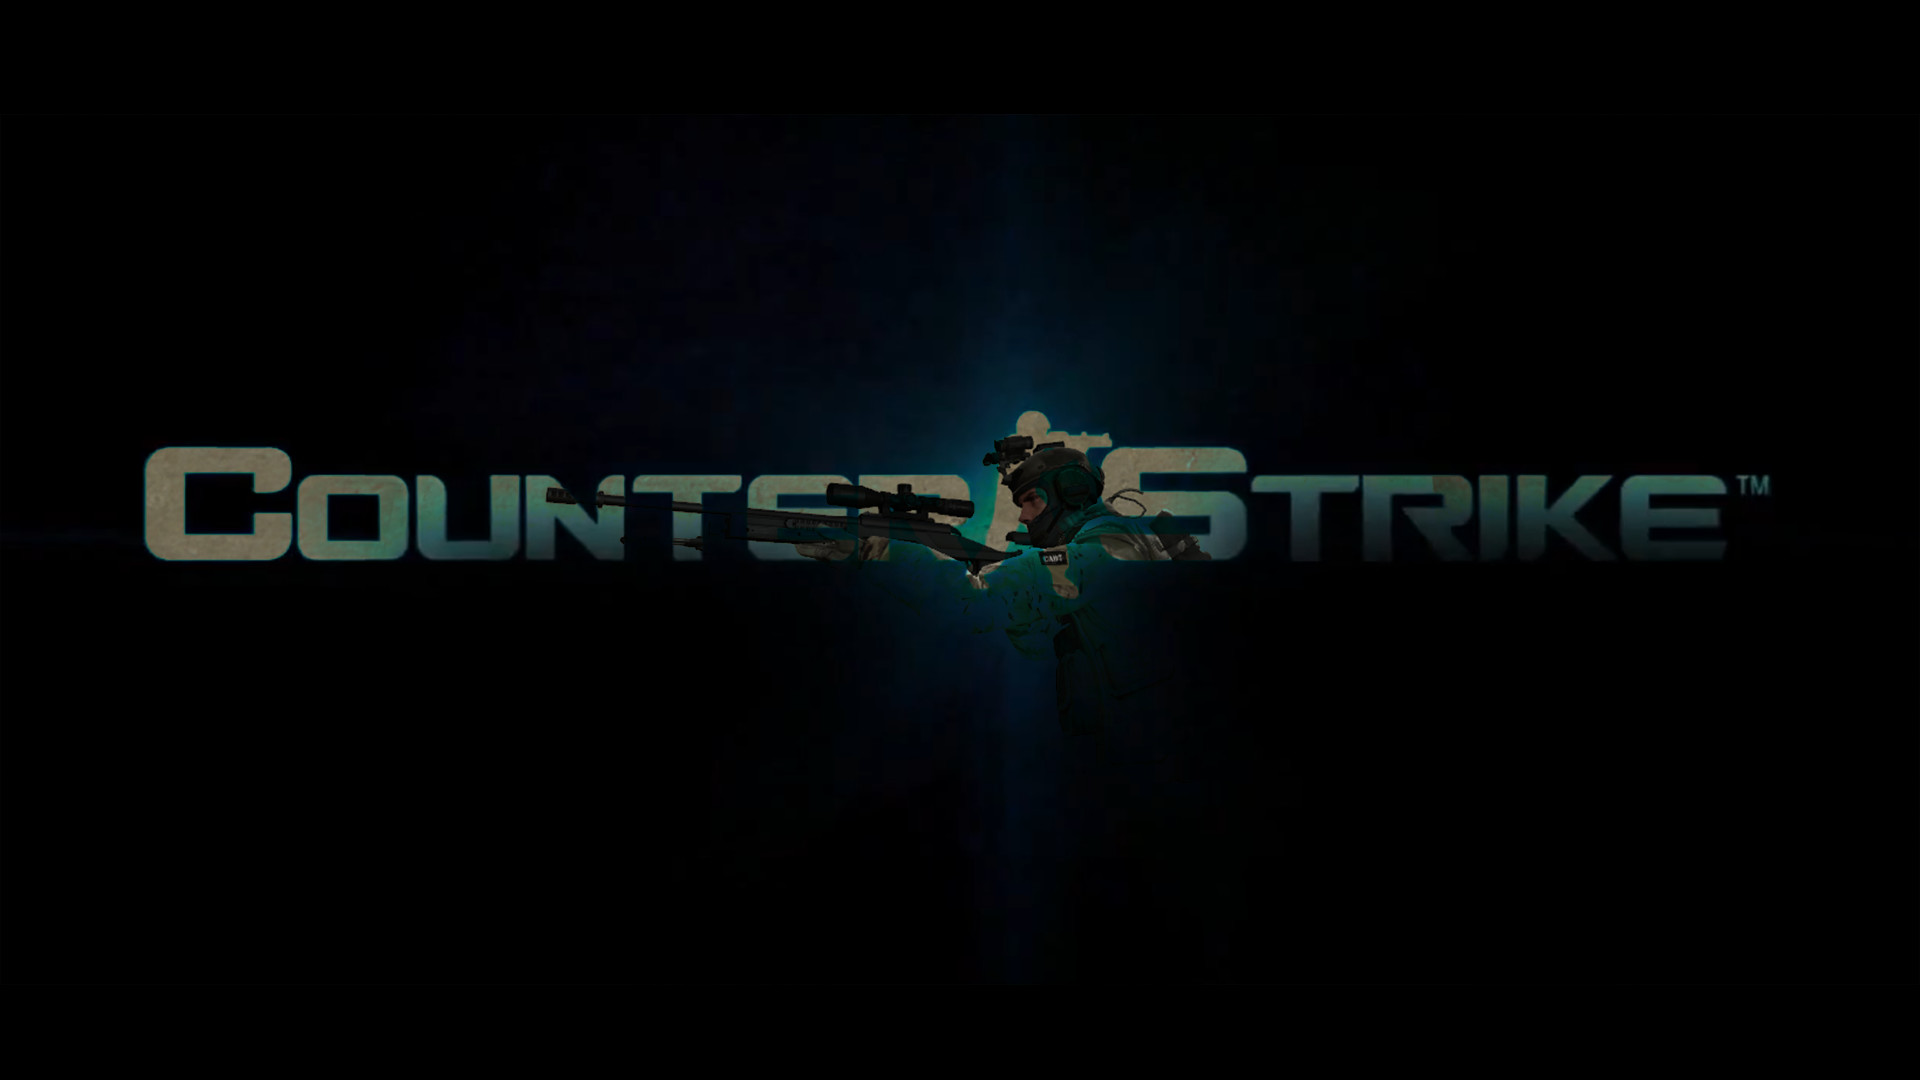 … Counter Strike Wallpapers …